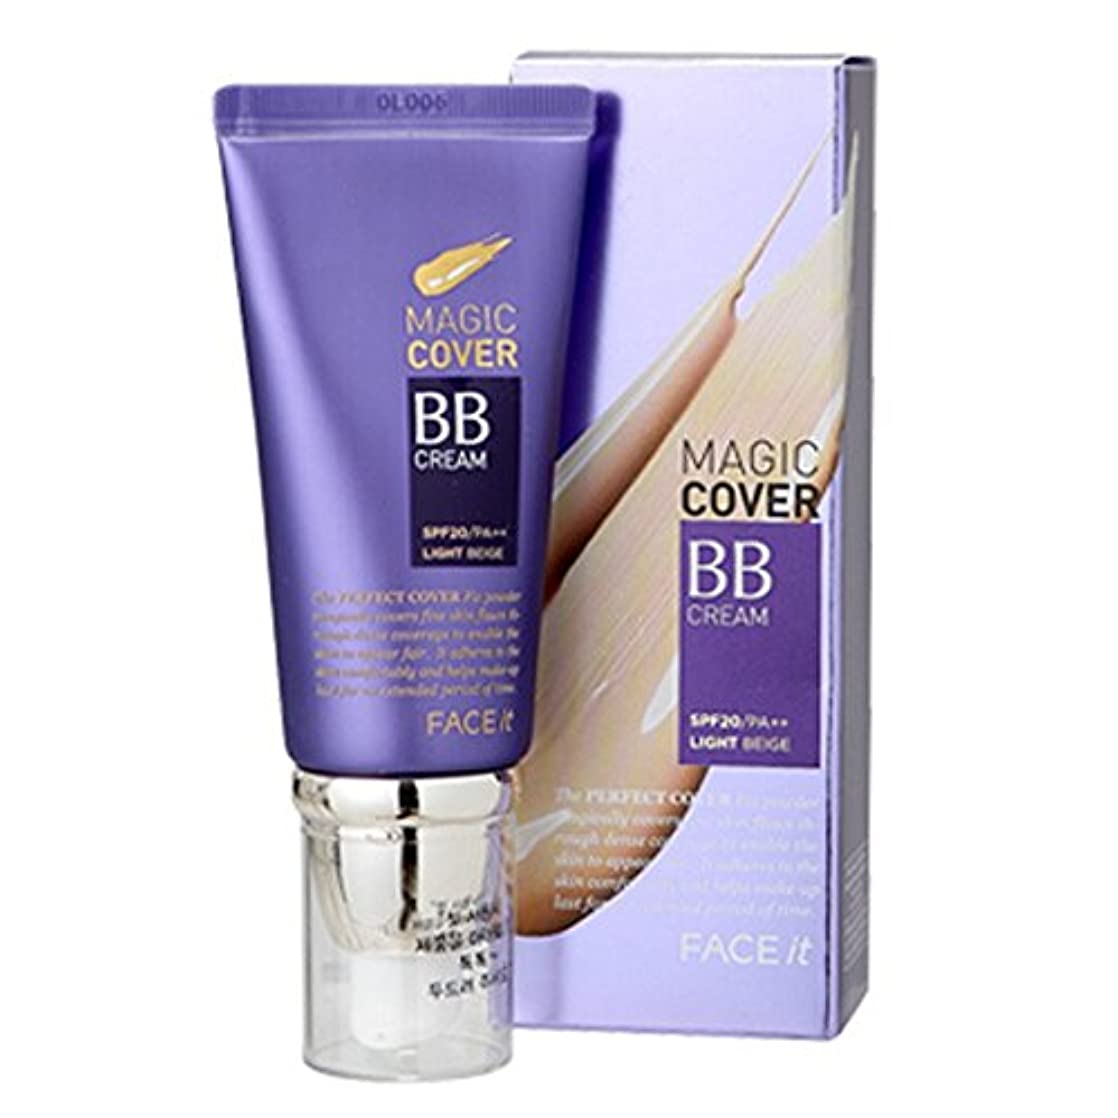 すべき結婚した妥協ザフェイスショップ The Face Shop Face It Magic Cover BB Cream 45ml (01 Light Beige)